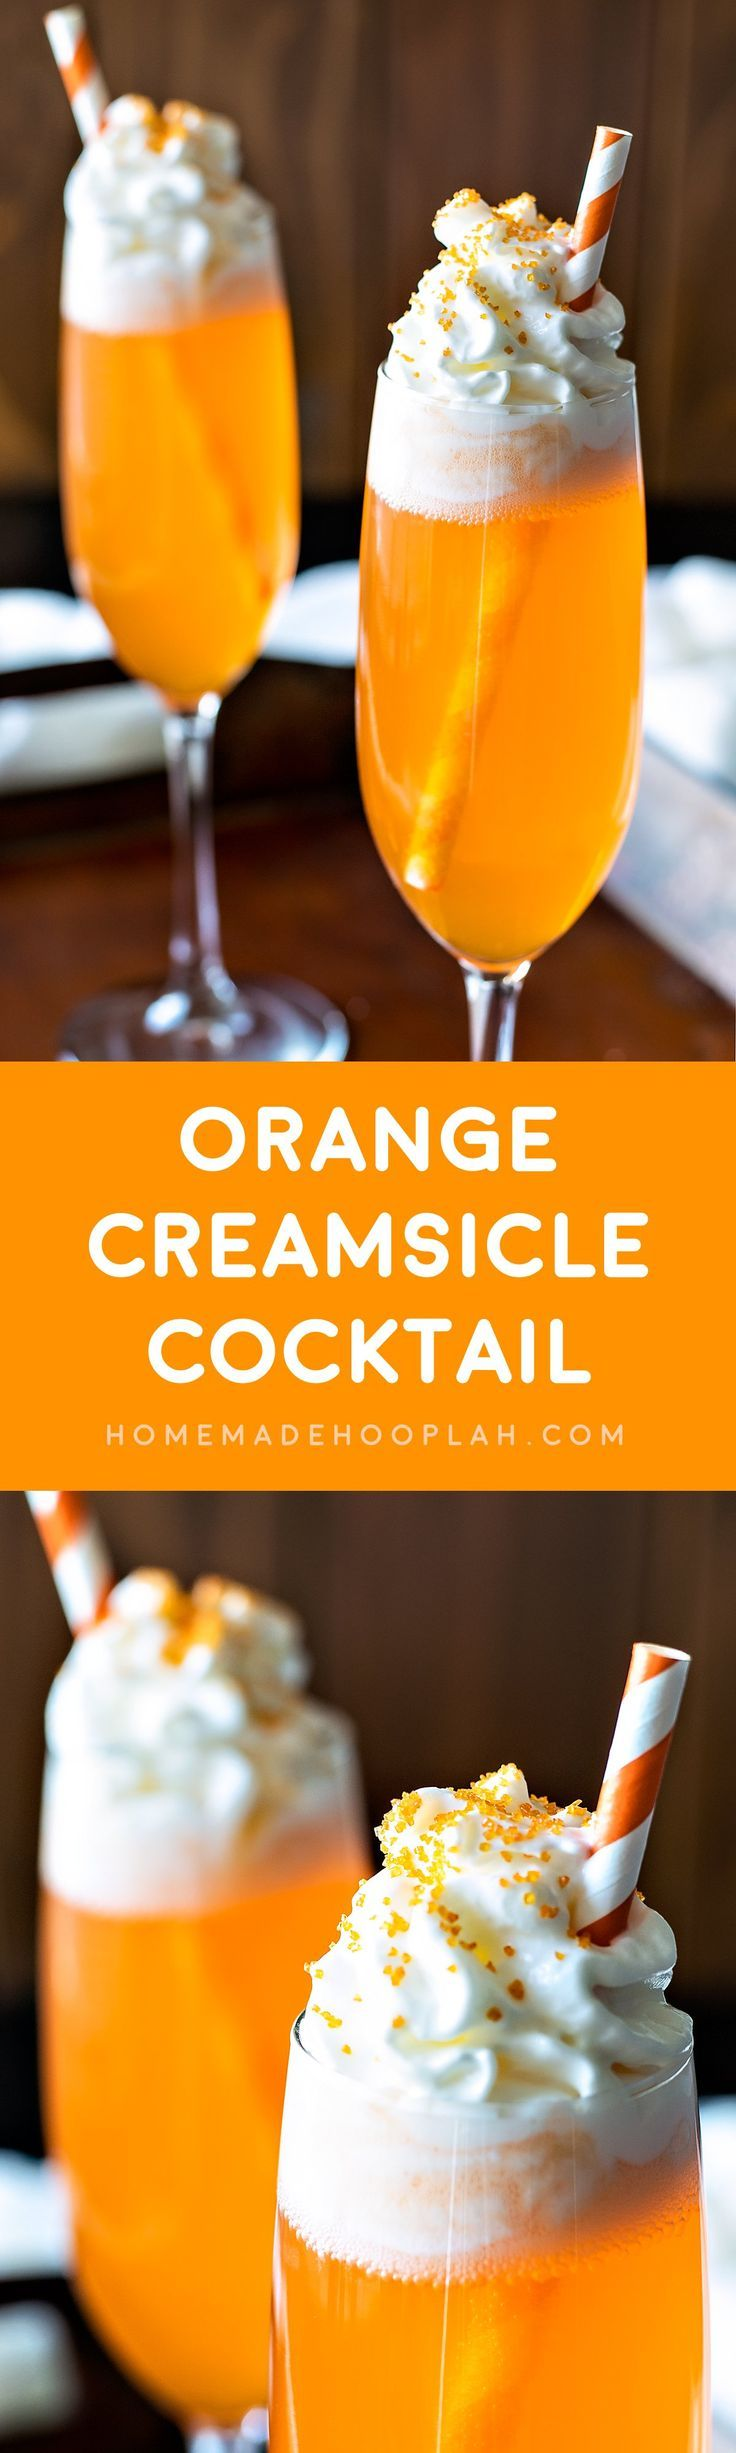 Creamsicle Drink Alcohol